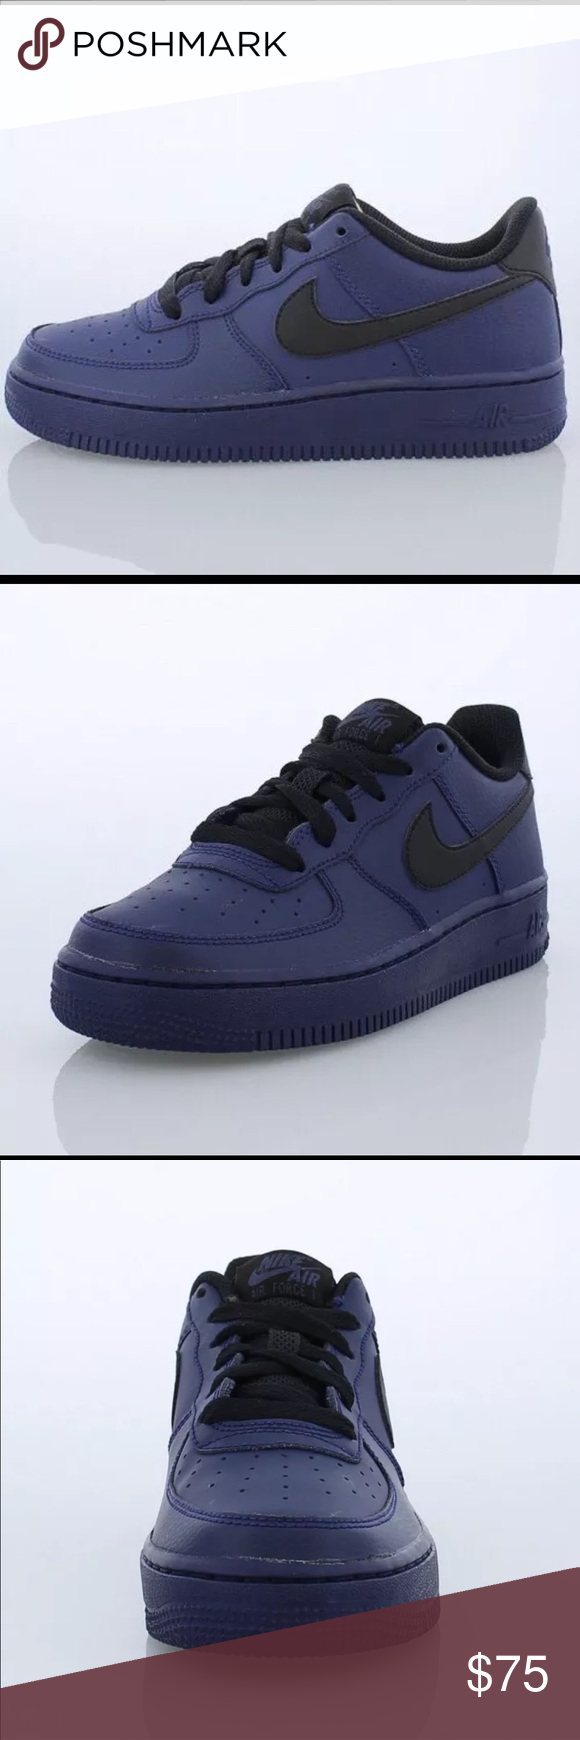 Nike Air Force 1 Low GS Women's Size 6.5 7 7.5 8.5 Brand new